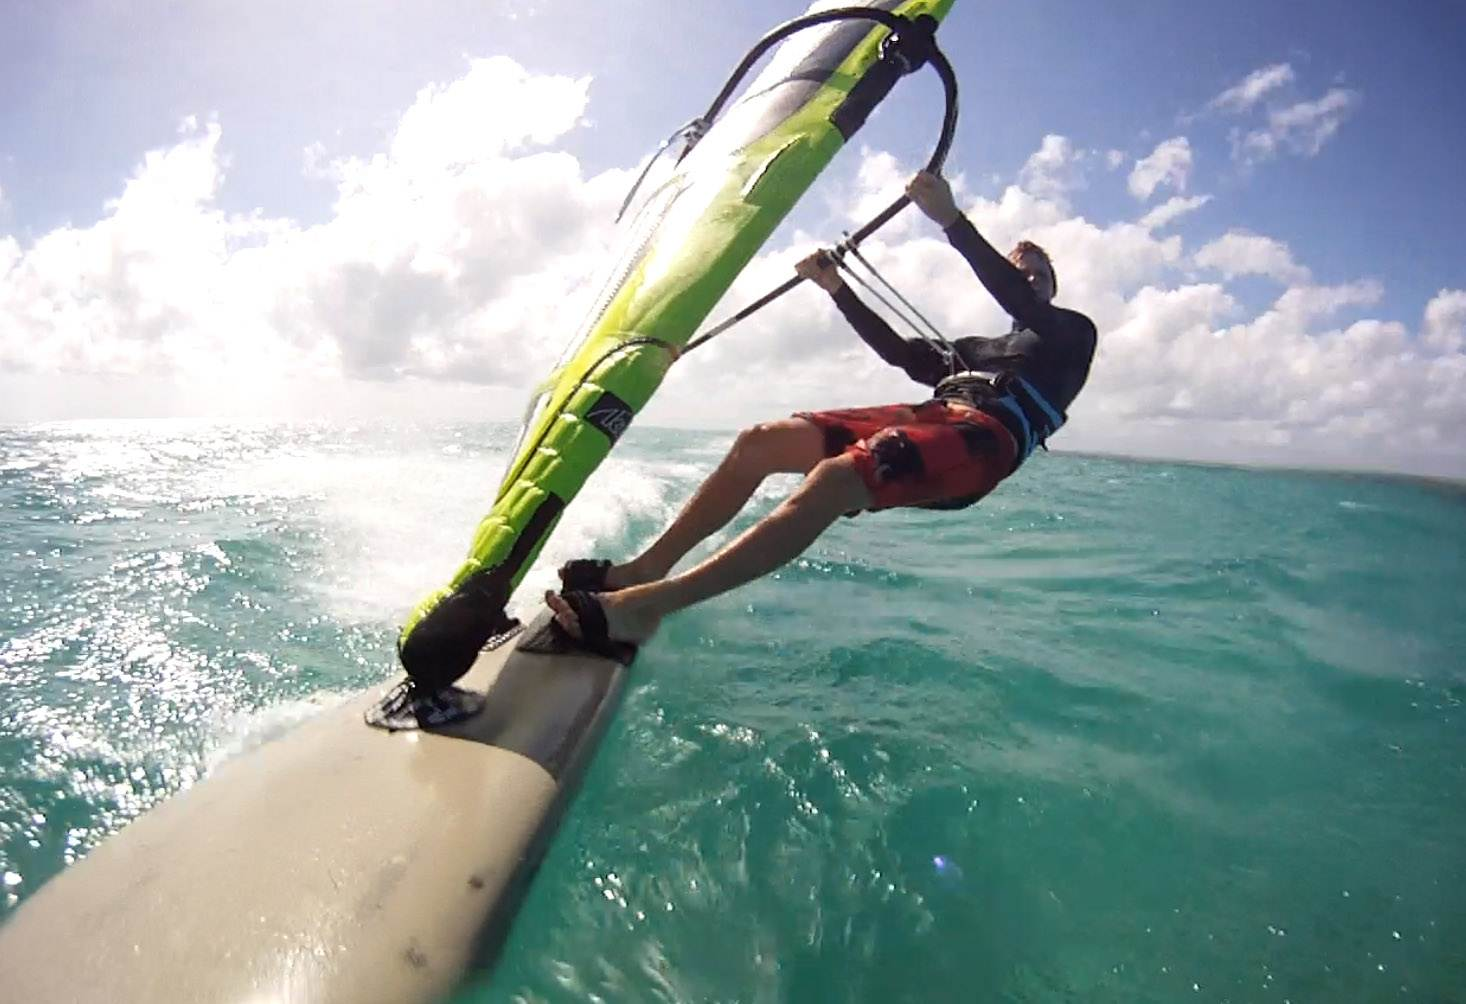 The correct way to use GoPro | Windsurfing Forums, page 1